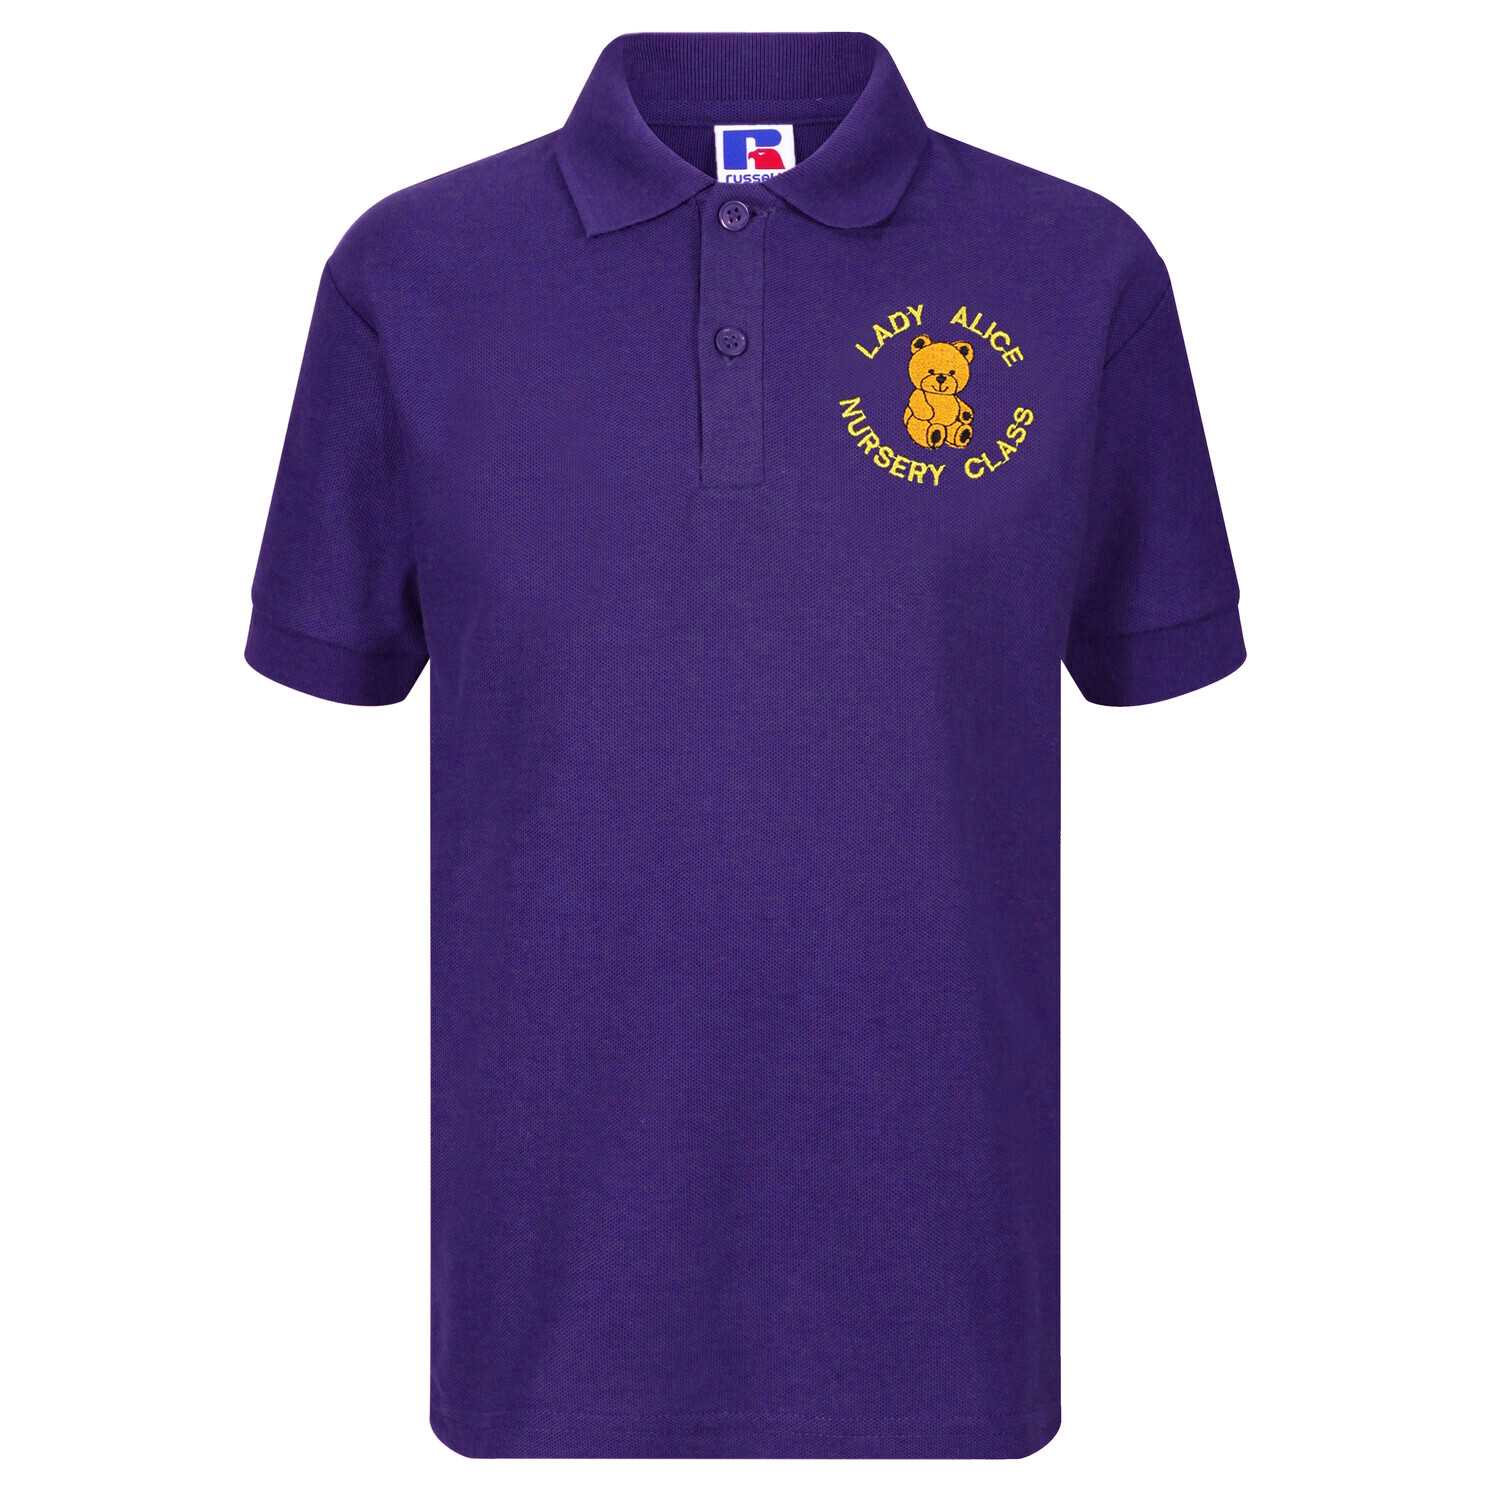 Lady Alice Nursery Staff Polo (Unisex) (RCS539M)